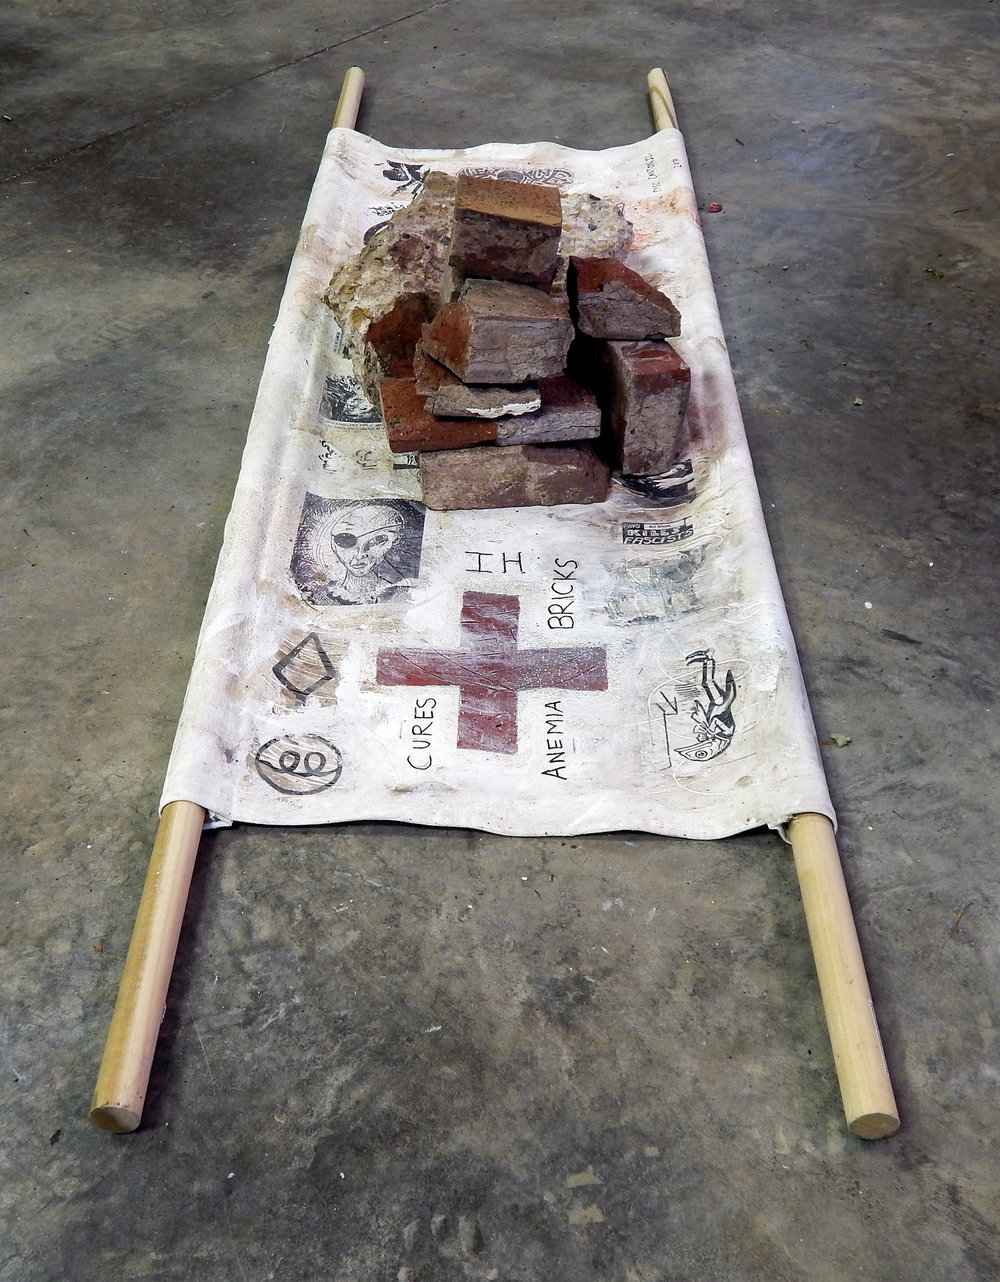 The Healing Properties of Post-Industrial Debris: IH Bricks (The Barista Who Could See the Future).   Acrylic, coffee, glitter ash, stickers, wig-hair, Sharpie on canvas with bricks from the abandoned International Harvester plant in Canton, Illinois and wood (2017).